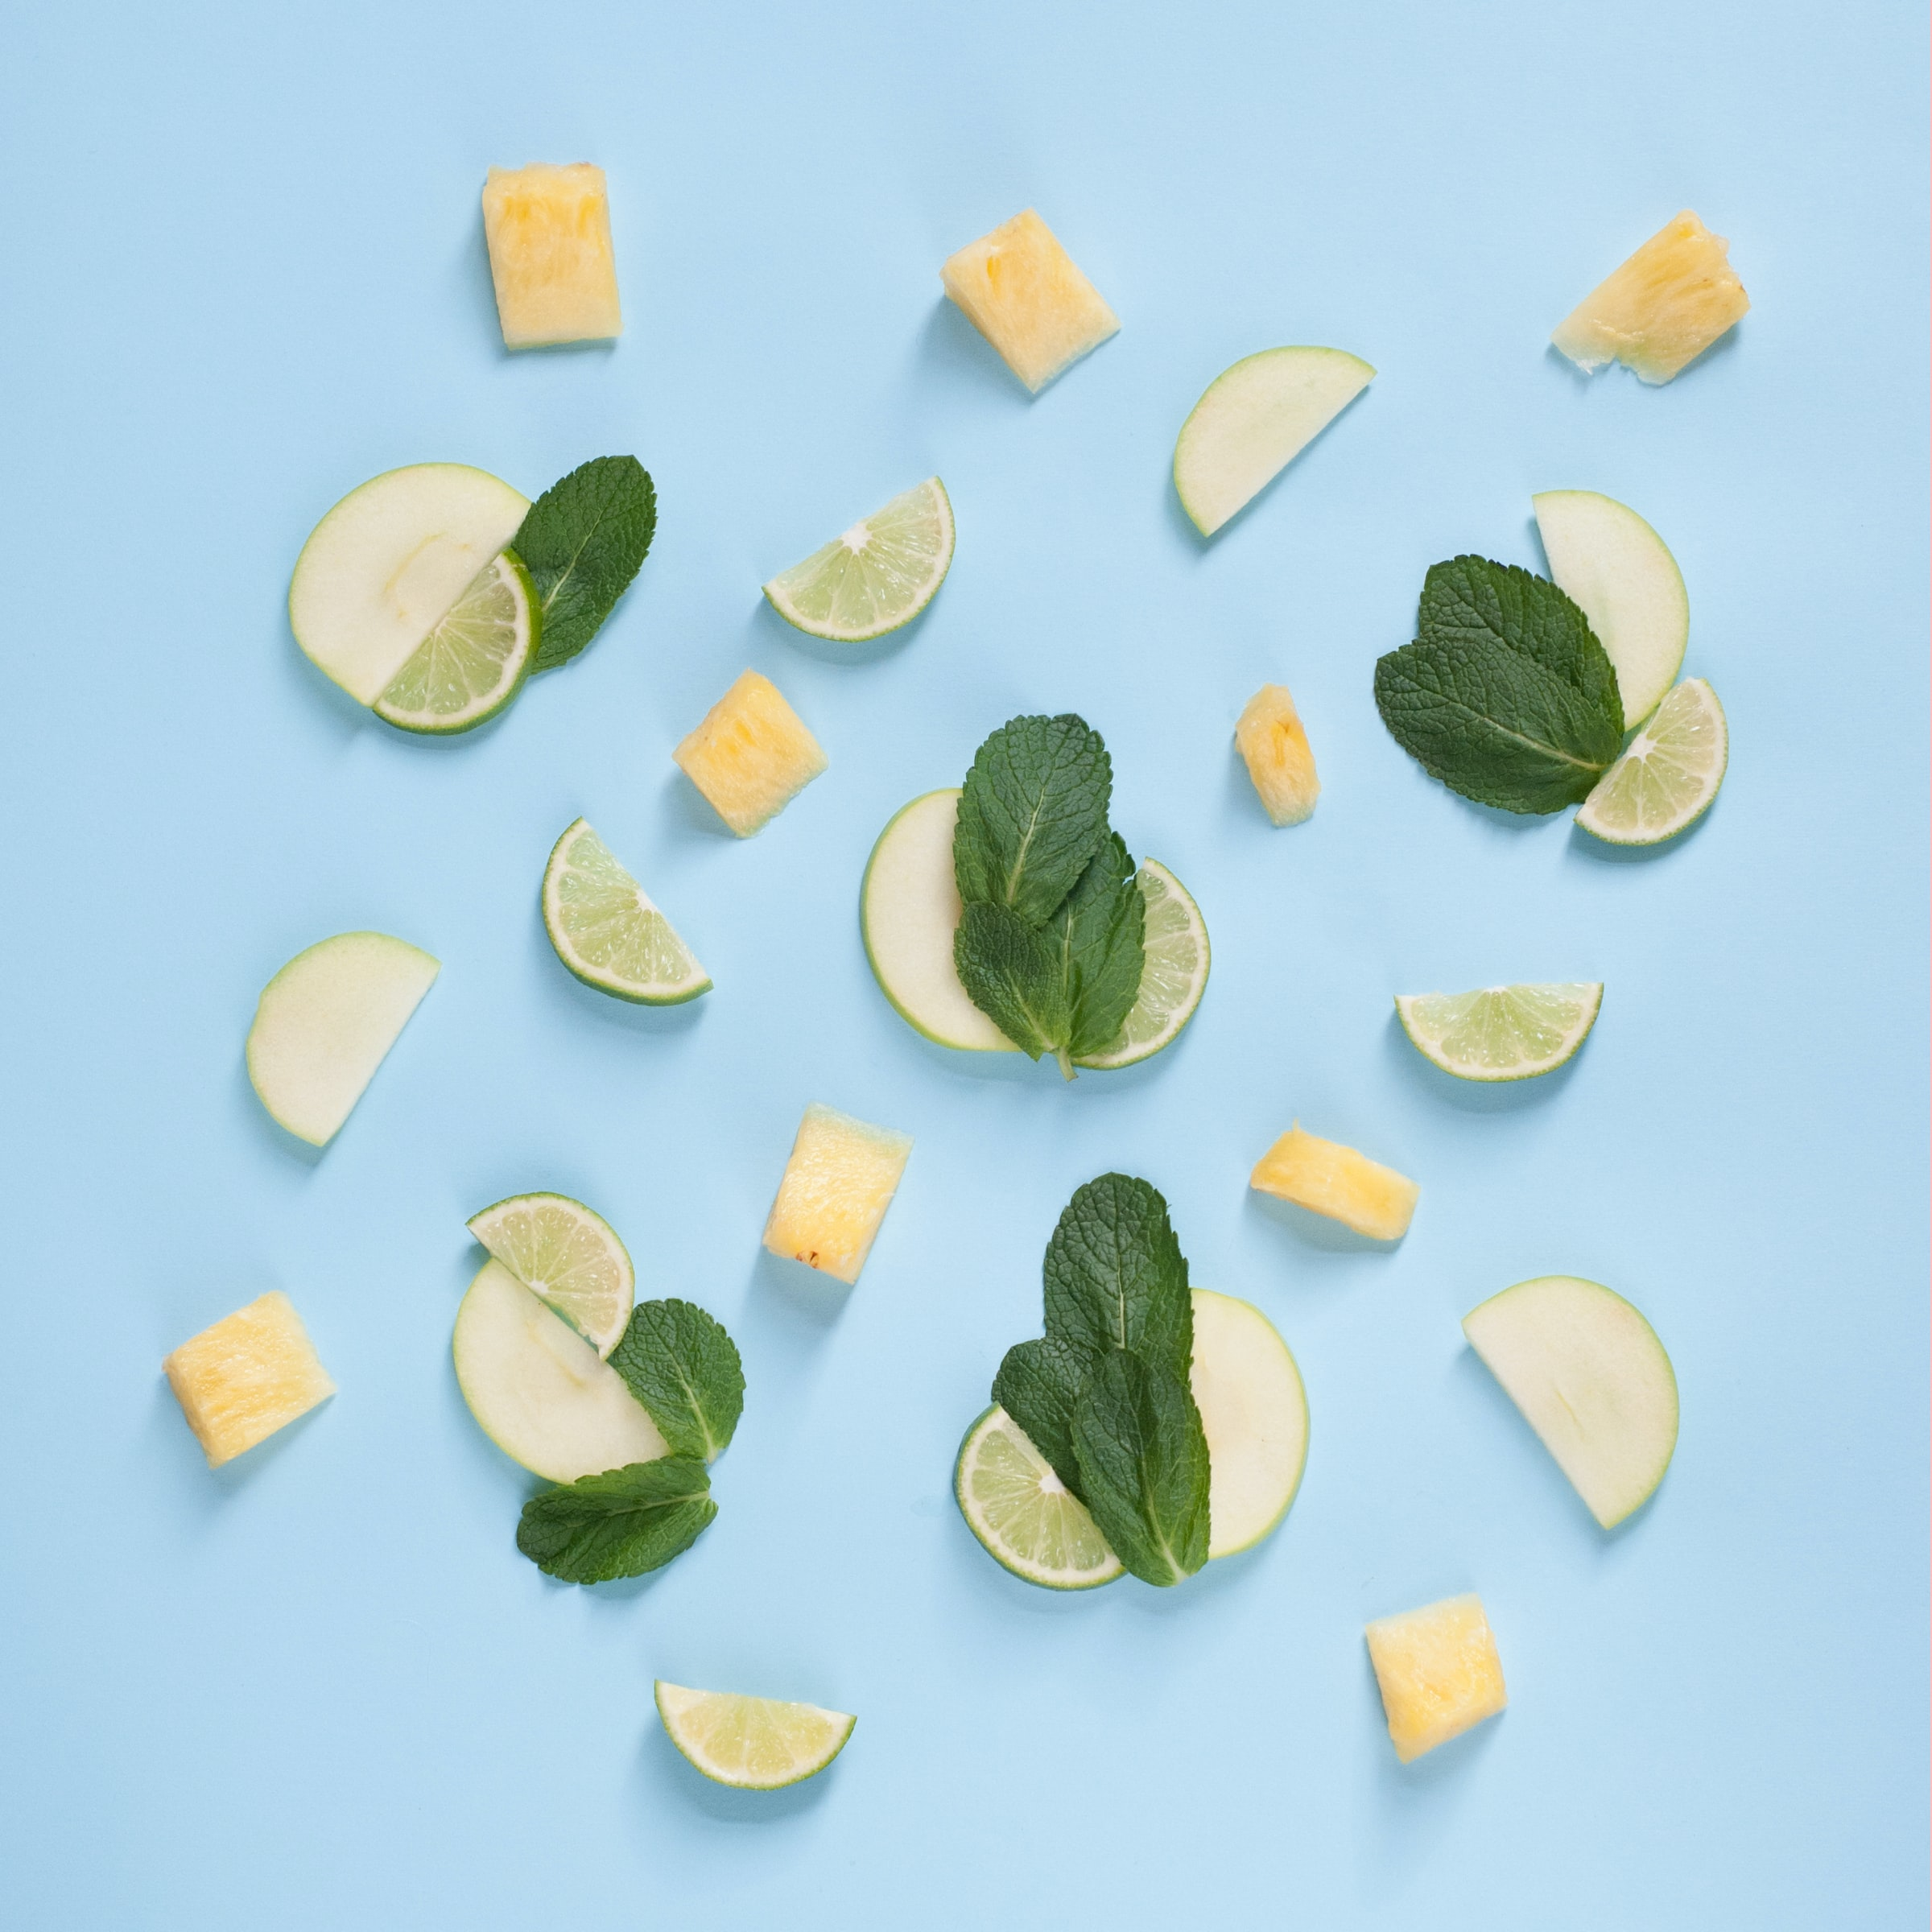 Slices of tropical fruit on a blue background